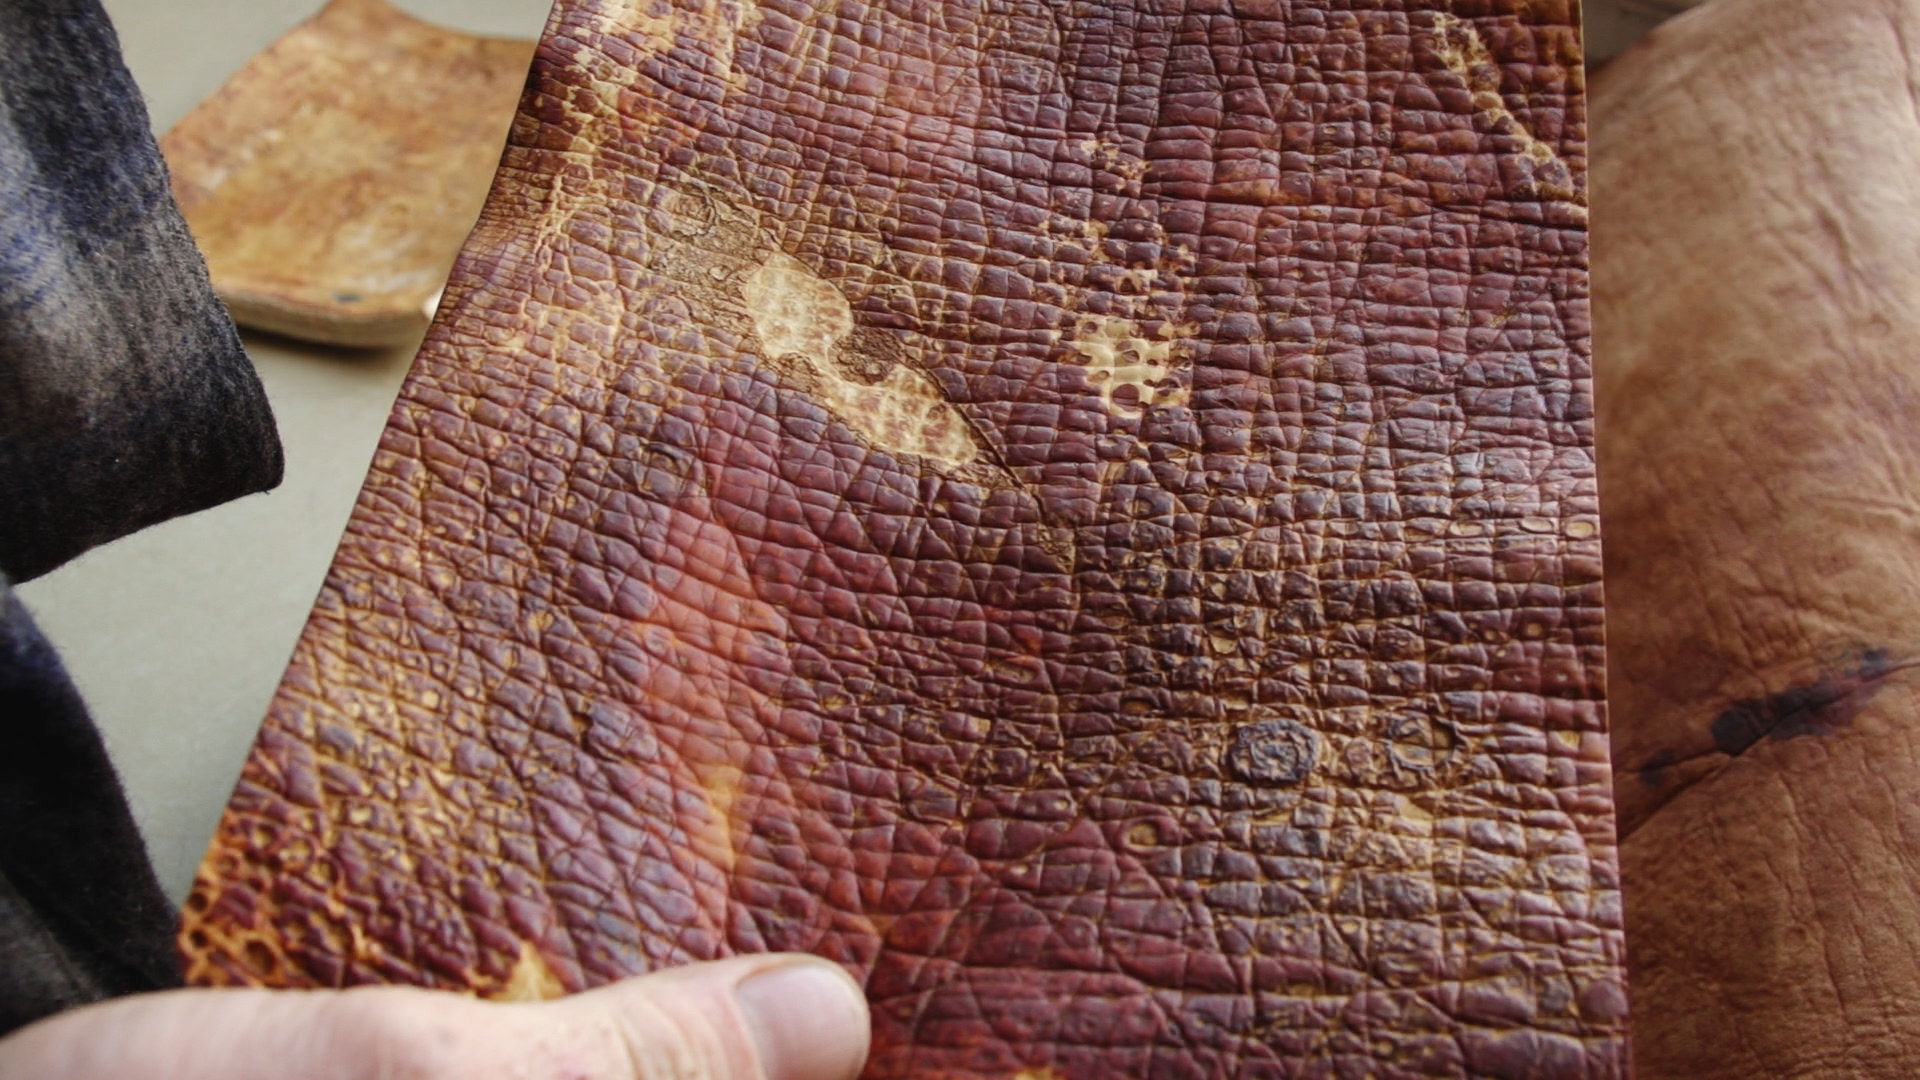 MycoWorks' mushroom leather. Credit: Science Friday